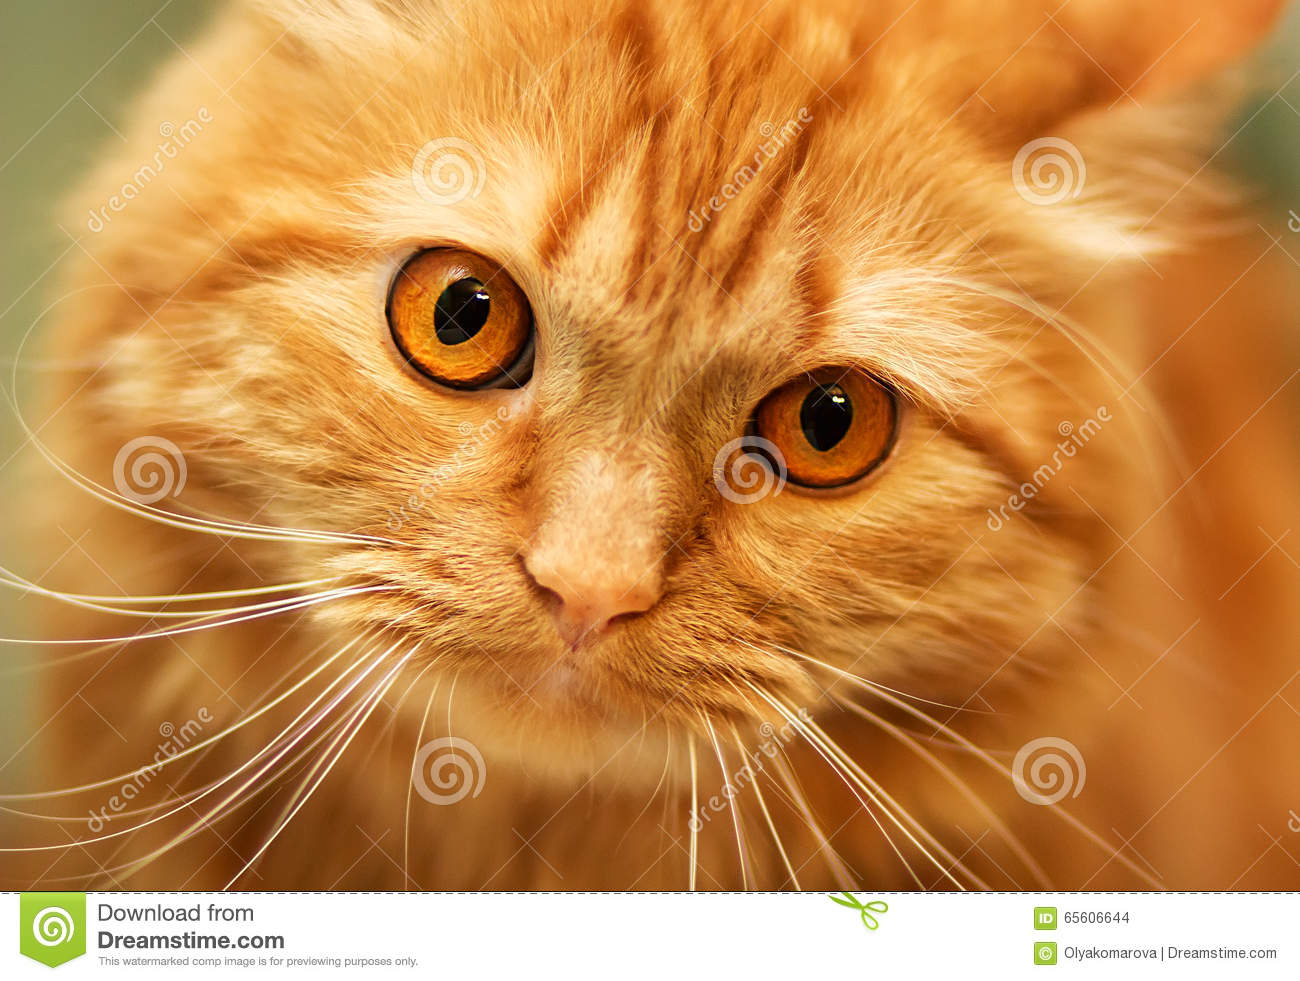 Red Fluffy Cat With Orange Eyes Stock Photo Image Of Fluffy Color 65606644